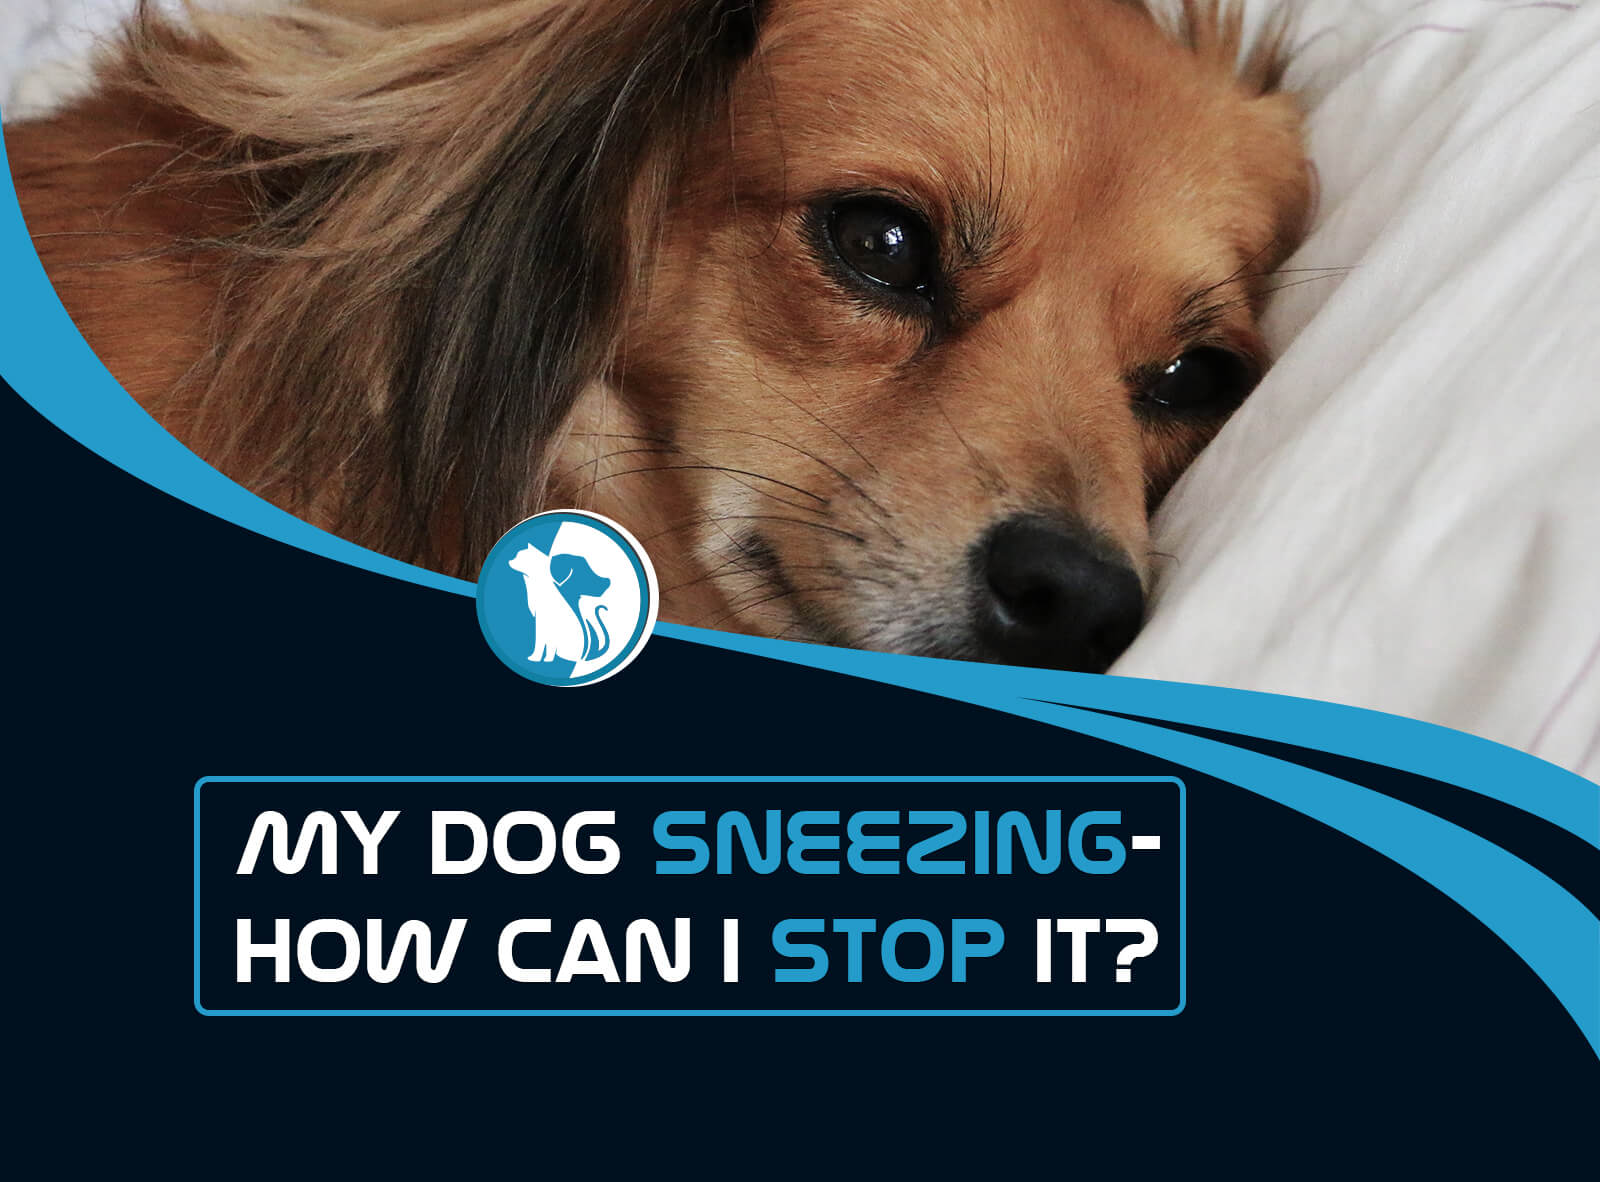 Why Is My Dog Sneezing and How Can I Stop It?